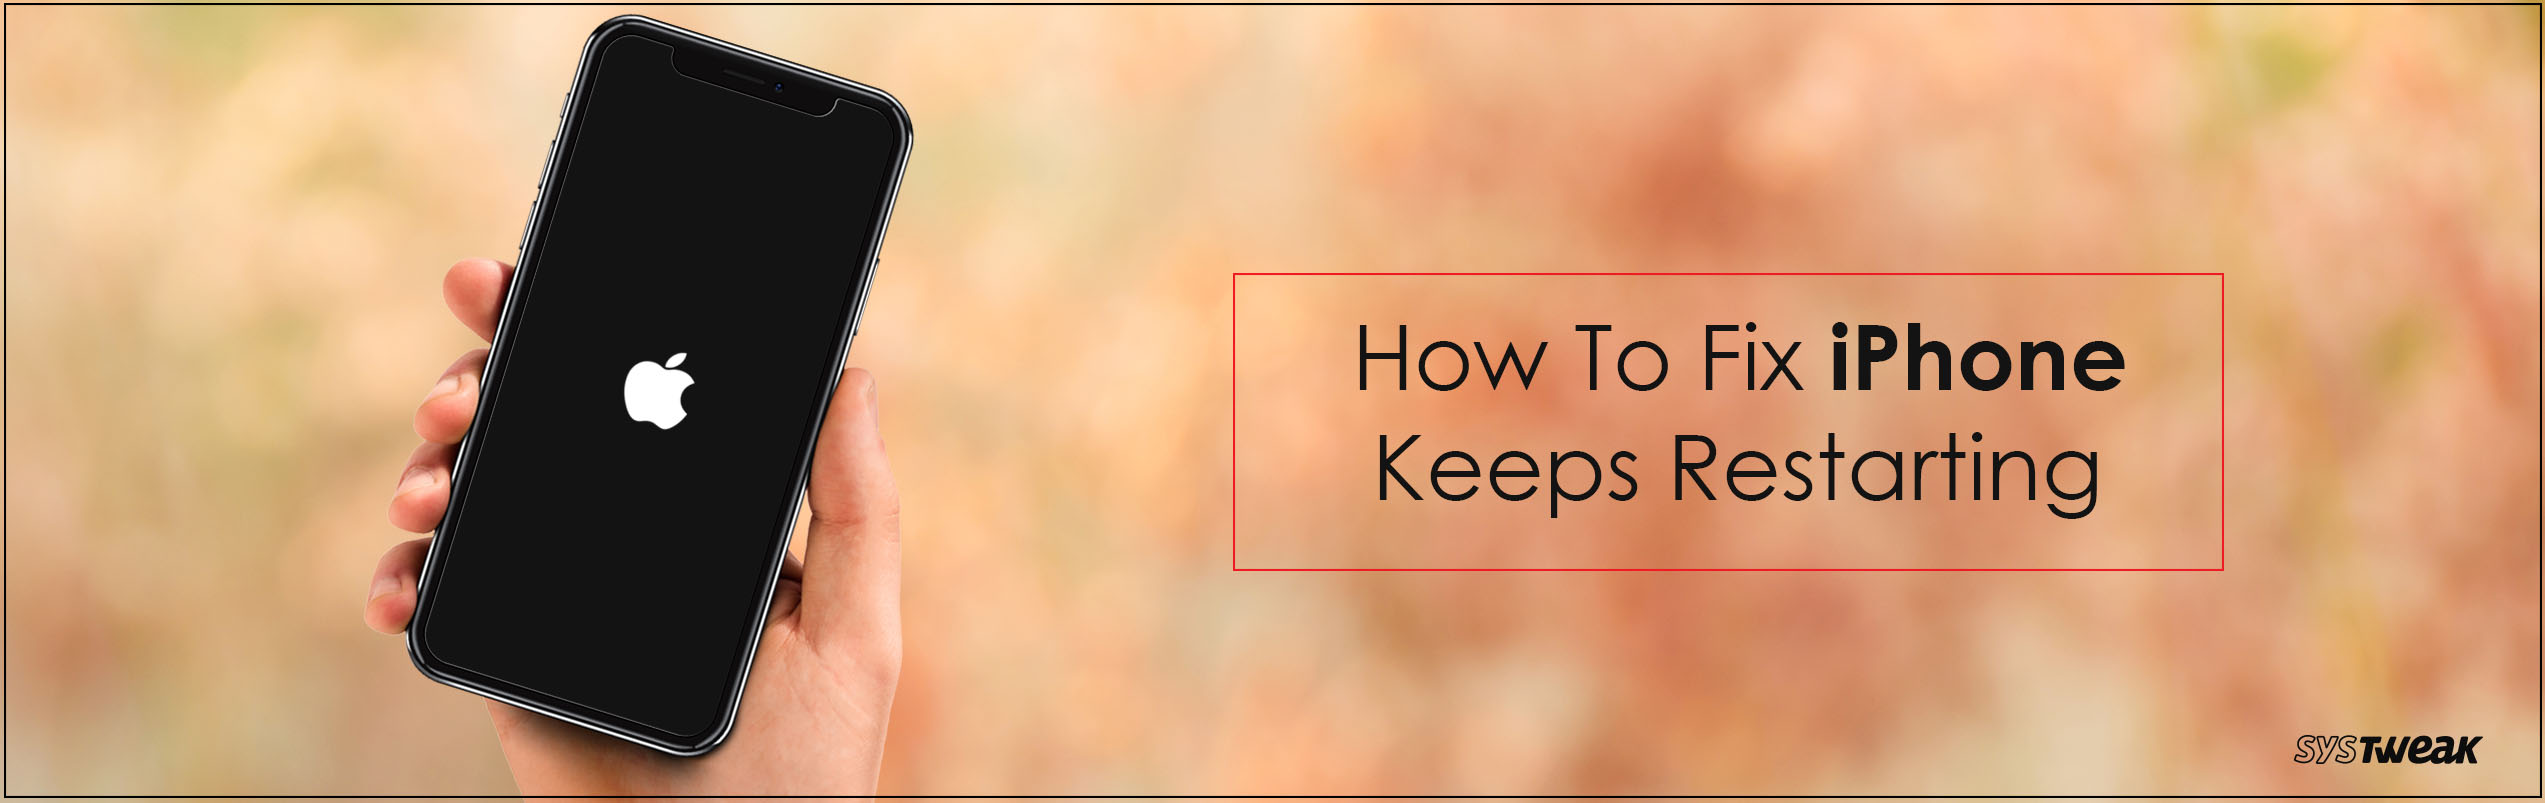 How To Fix iPhone Keeps Restarting Issue